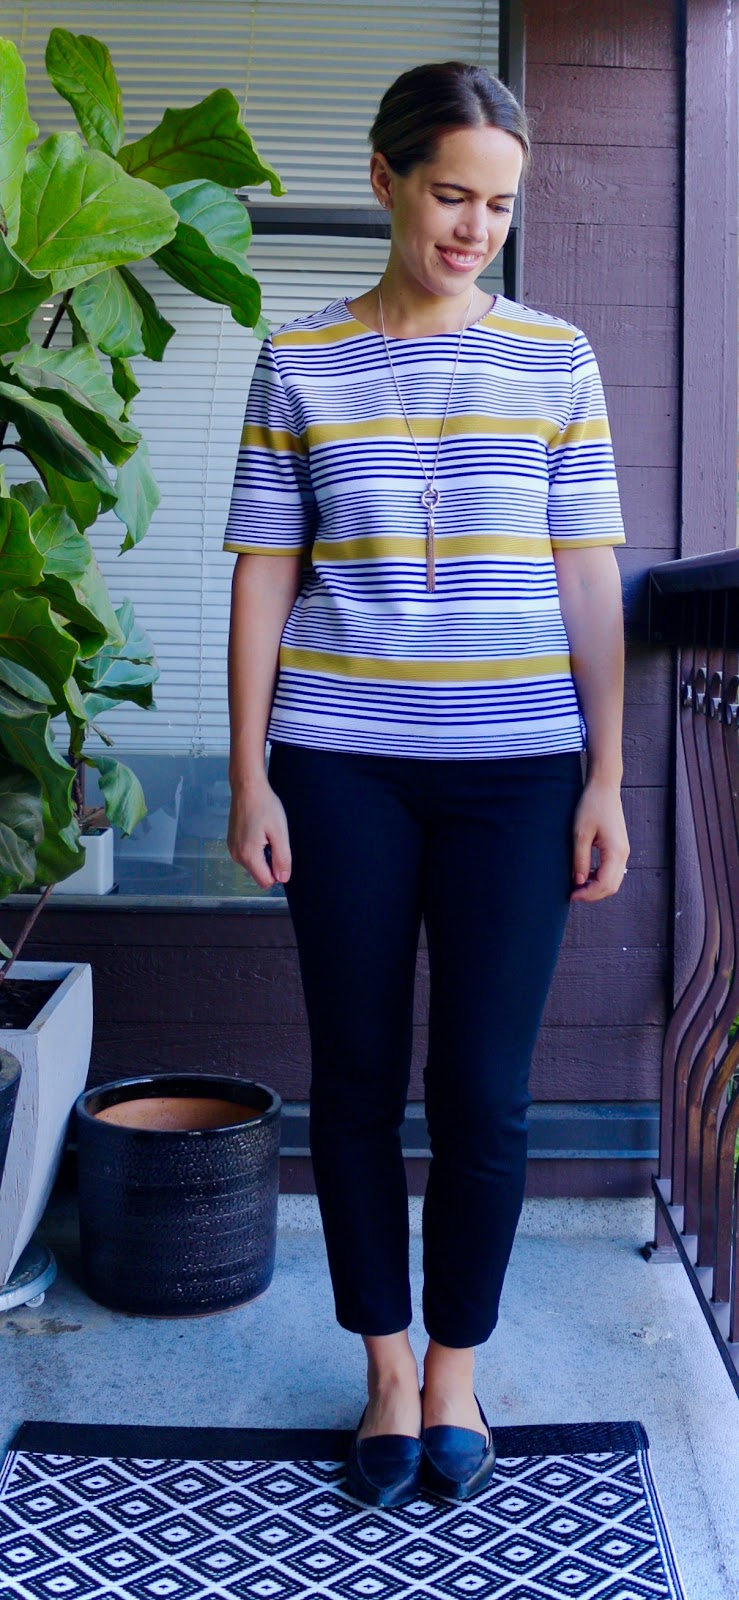 Jules in Flats - Boxy Striped Top